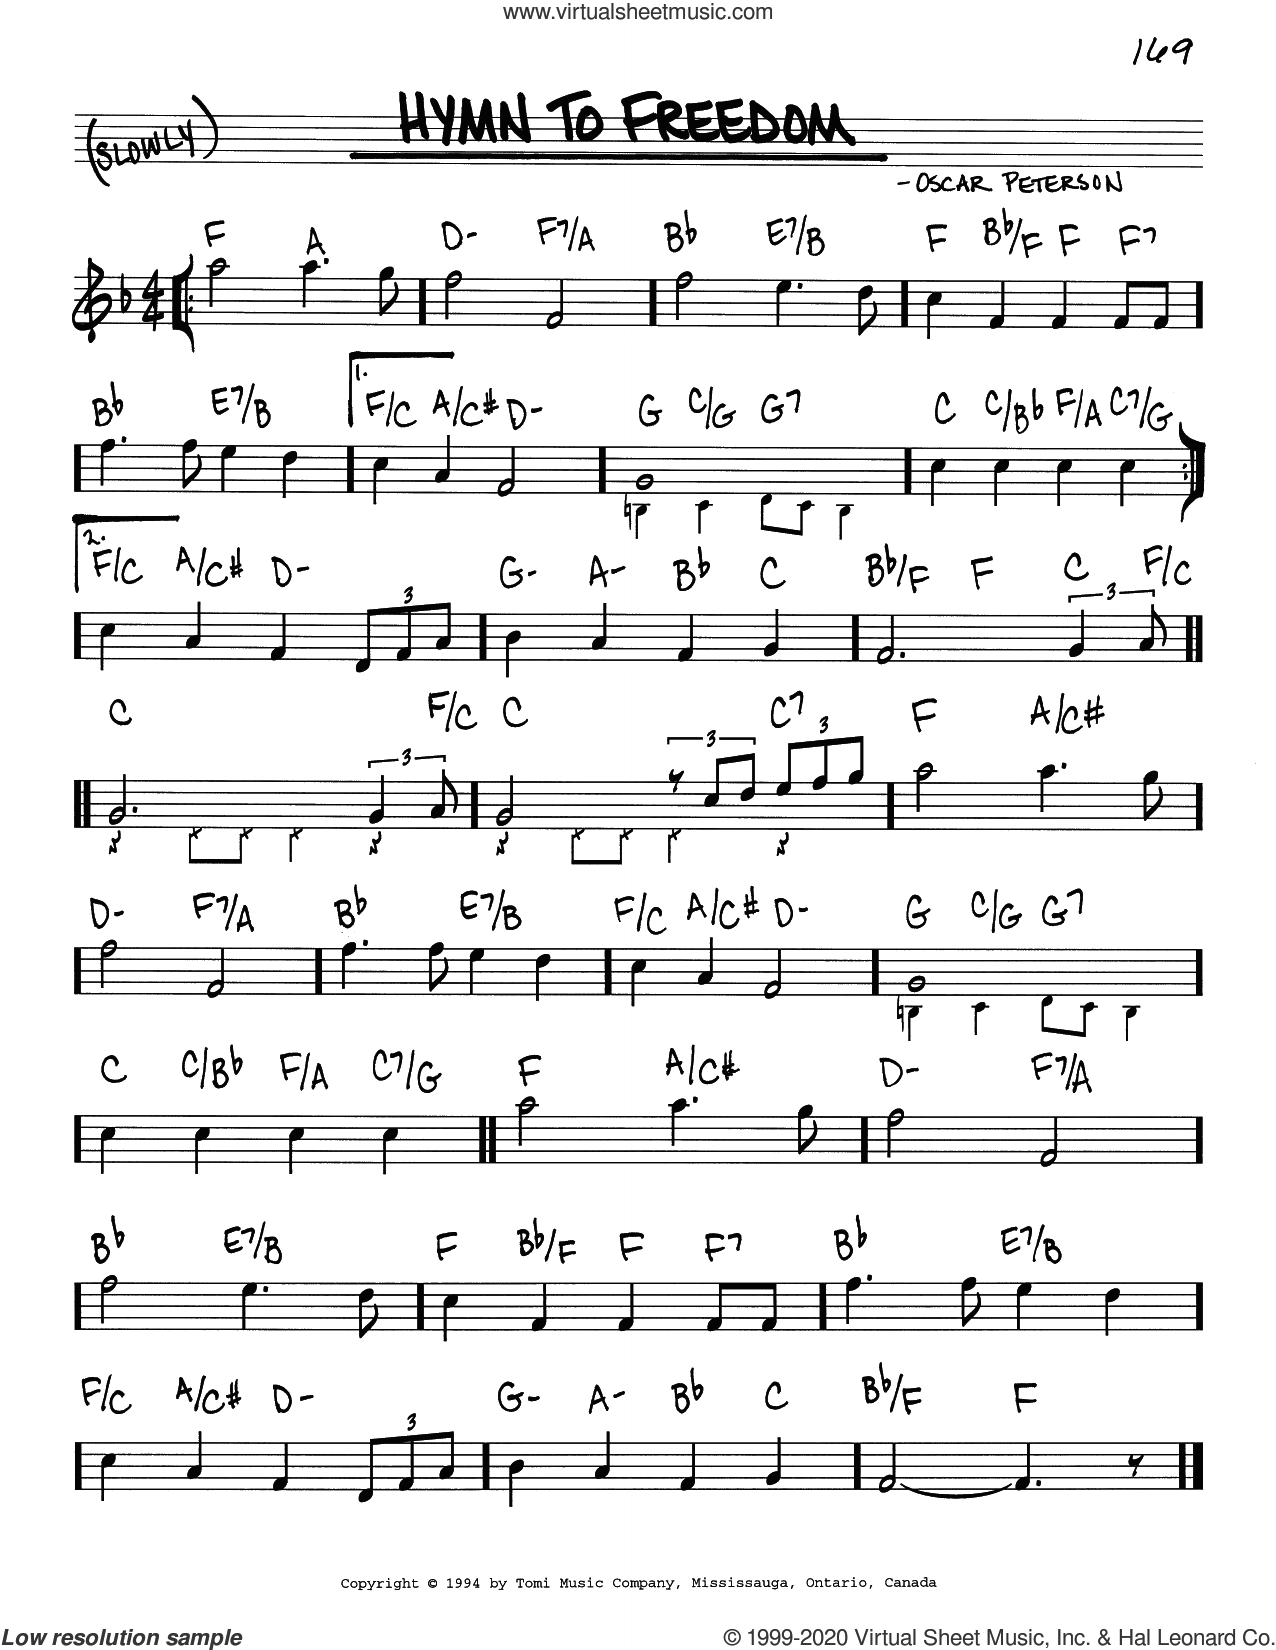 Hymn To Freedom sheet music for voice and other instruments (real book) by Oscar Peterson, intermediate skill level